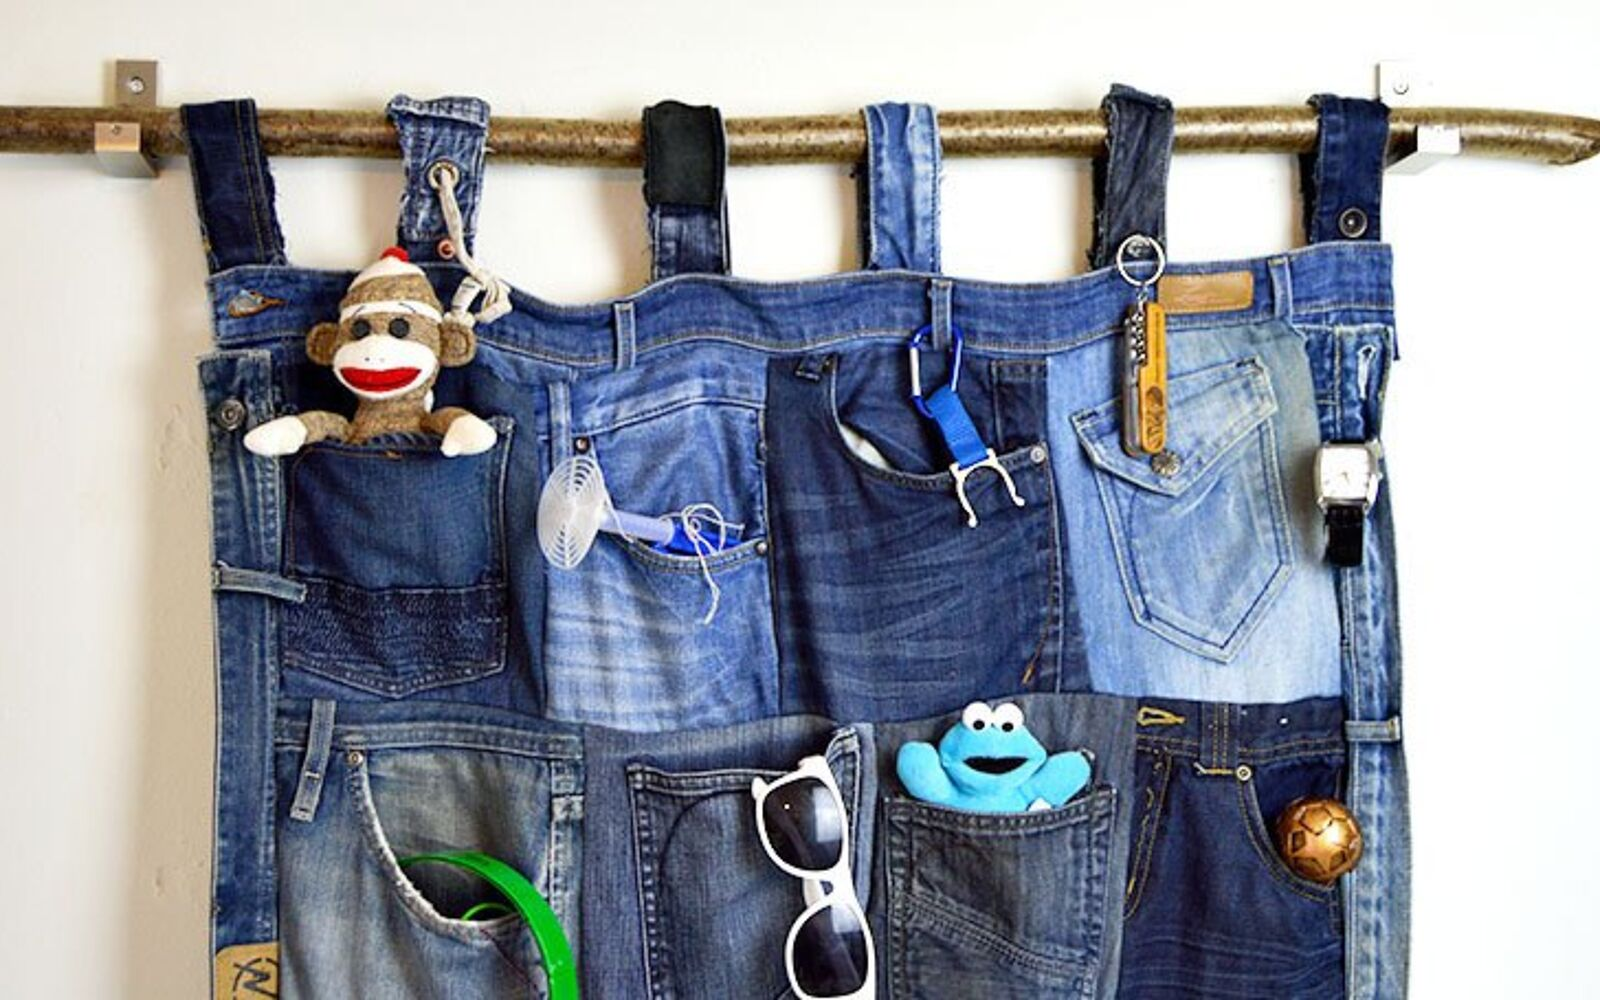 s 30 fun ways to keep your home organized, Snip Up Your Jeans For A Pocket Organizer